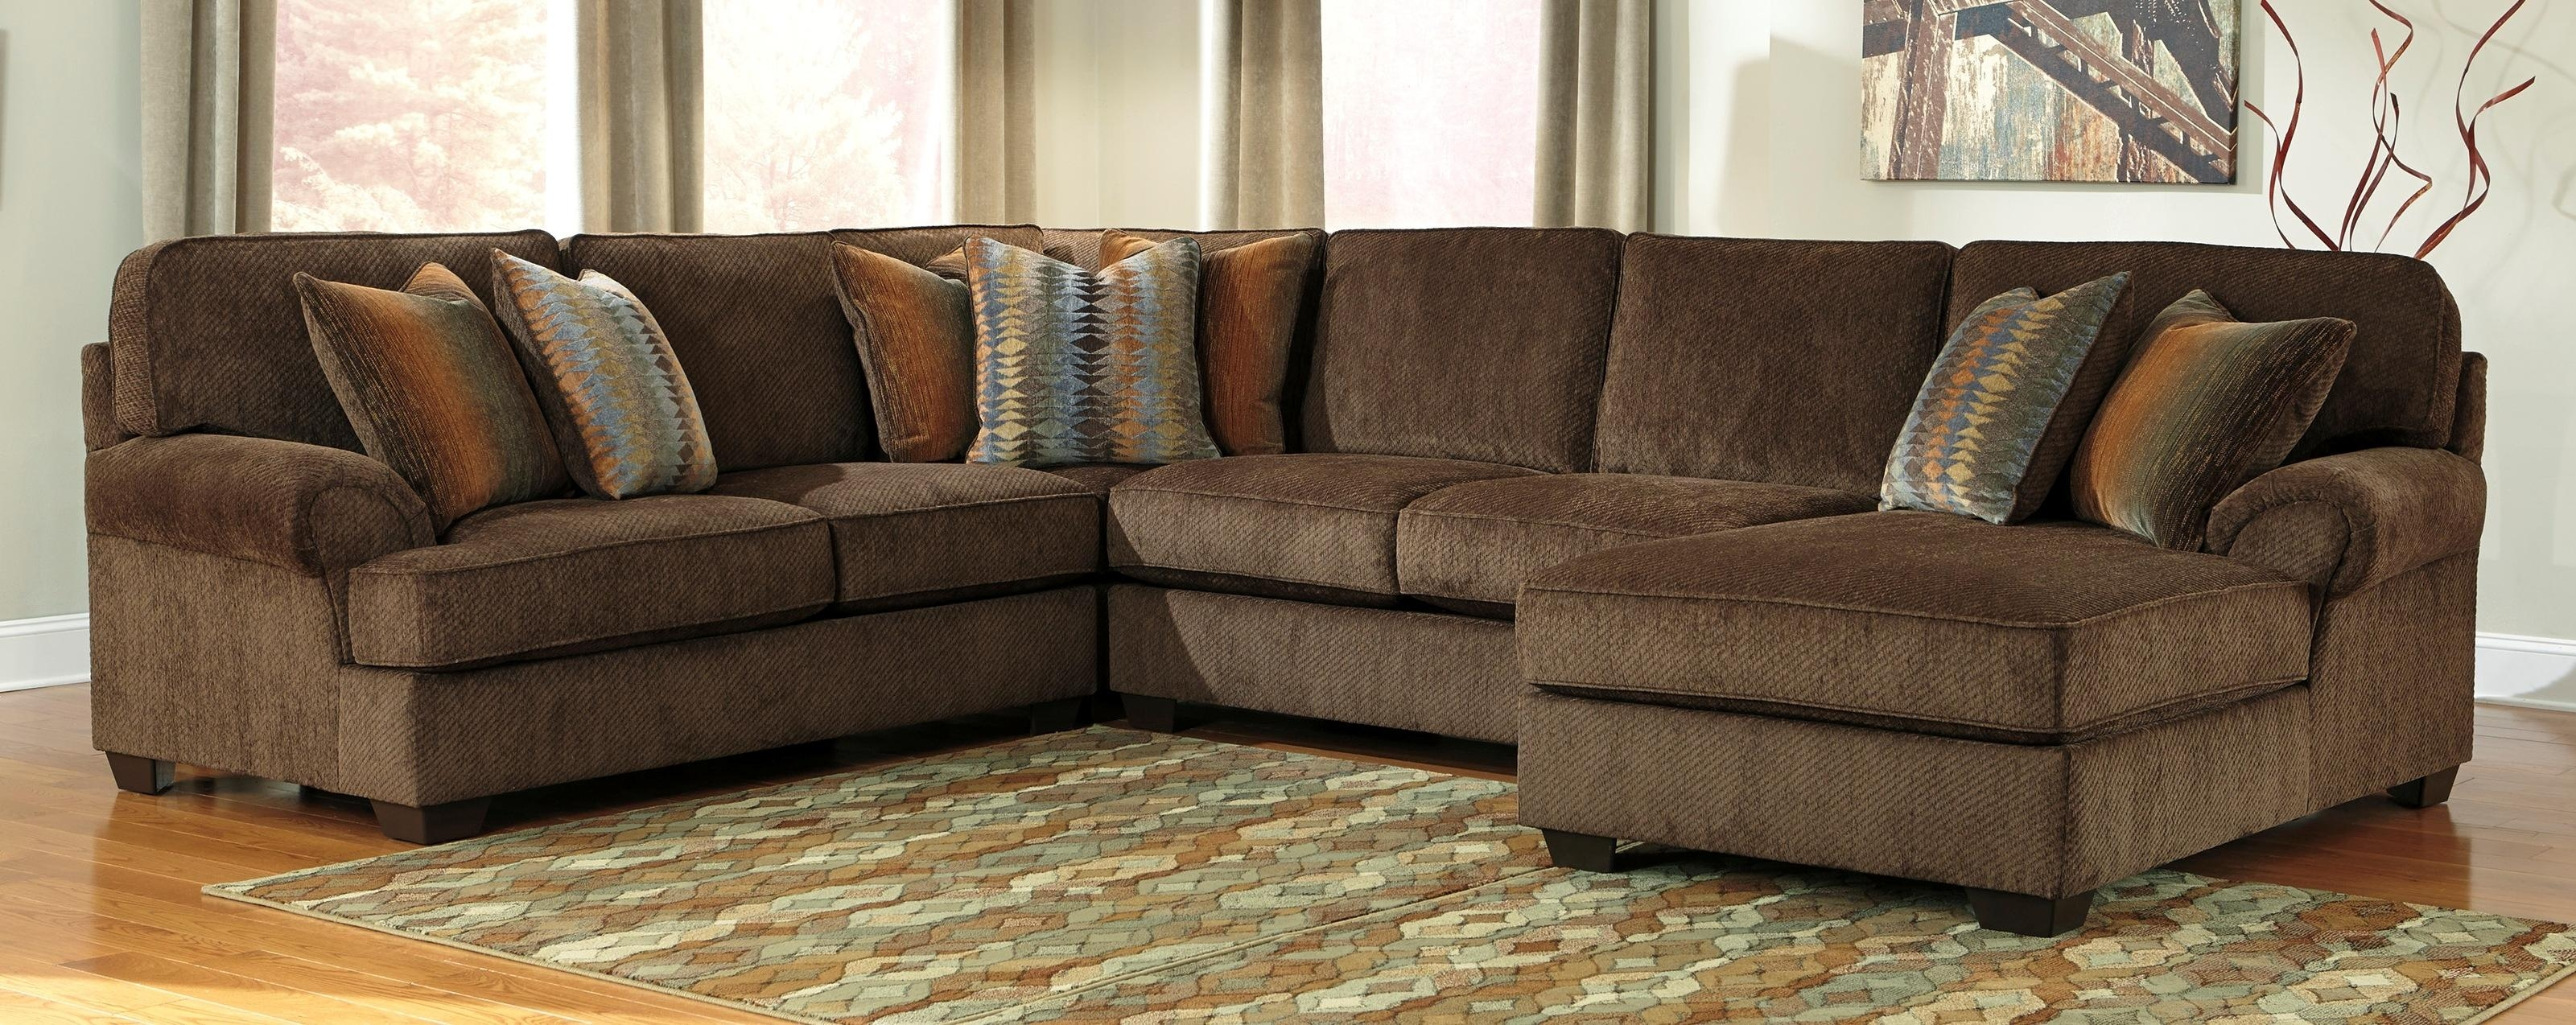 Ashley Furniture Sectional Sofa Bed (Image 3 of 15)